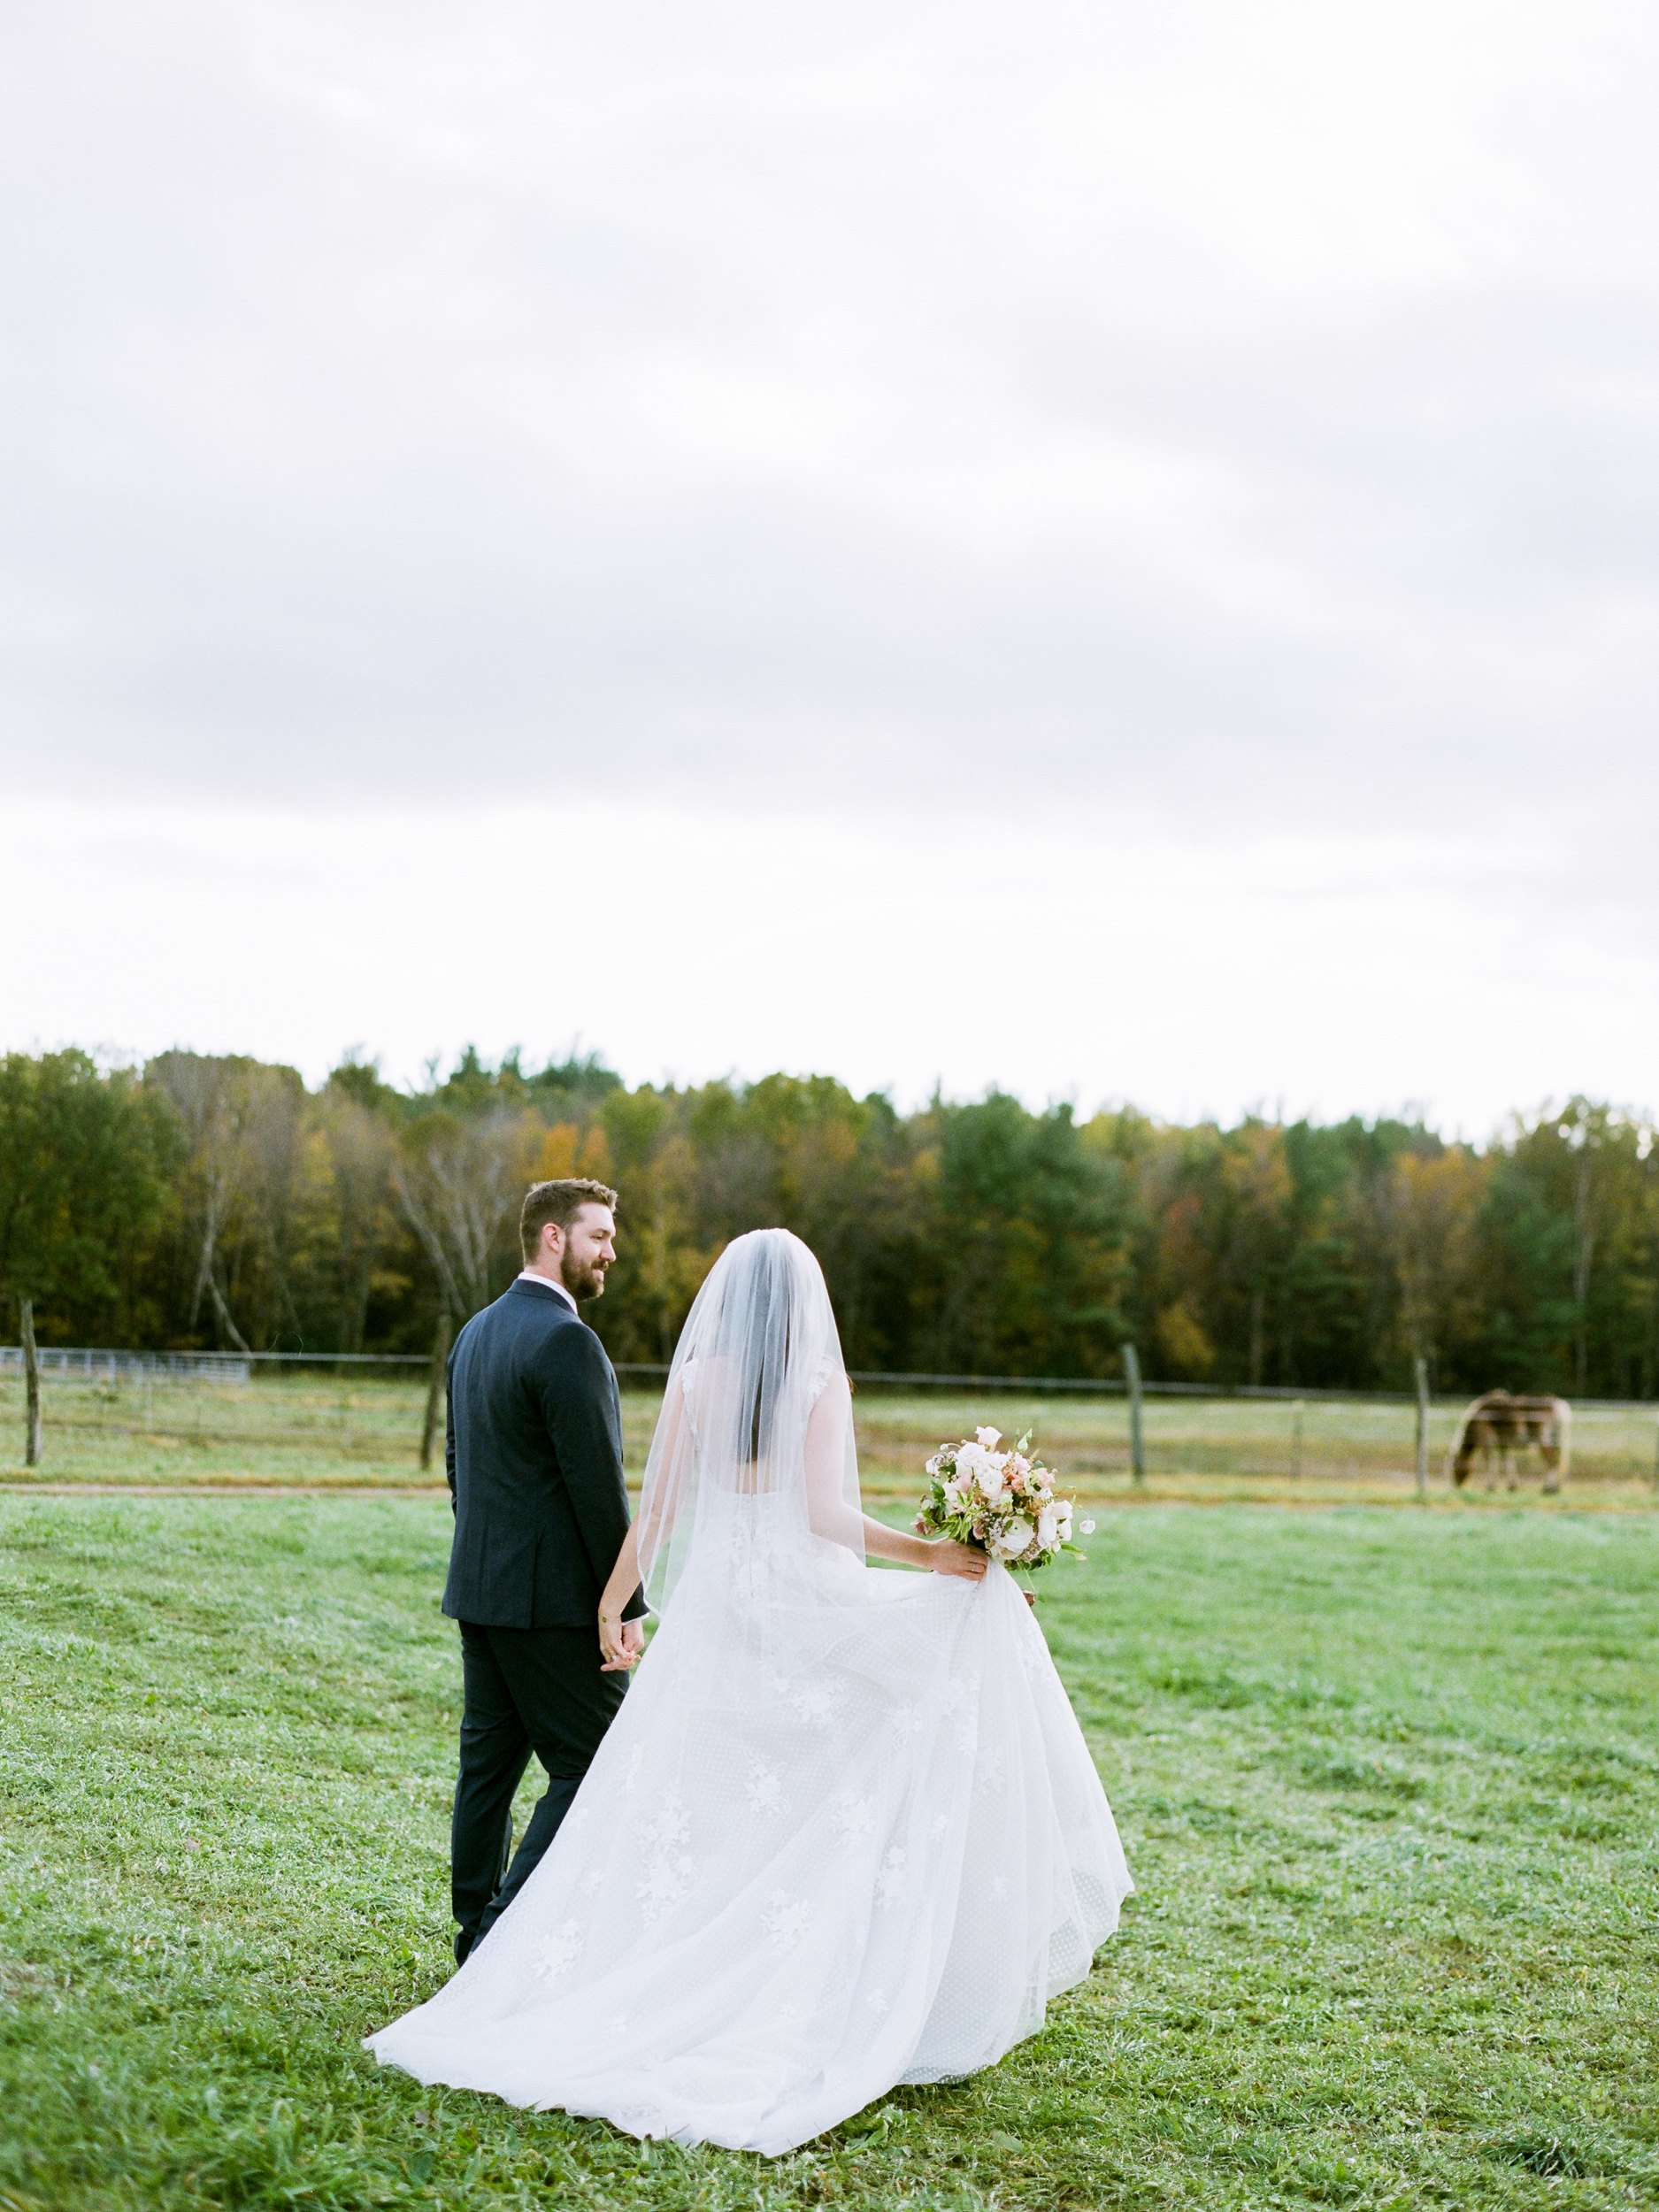 Wedding Photographers in Amherst Massachusetts